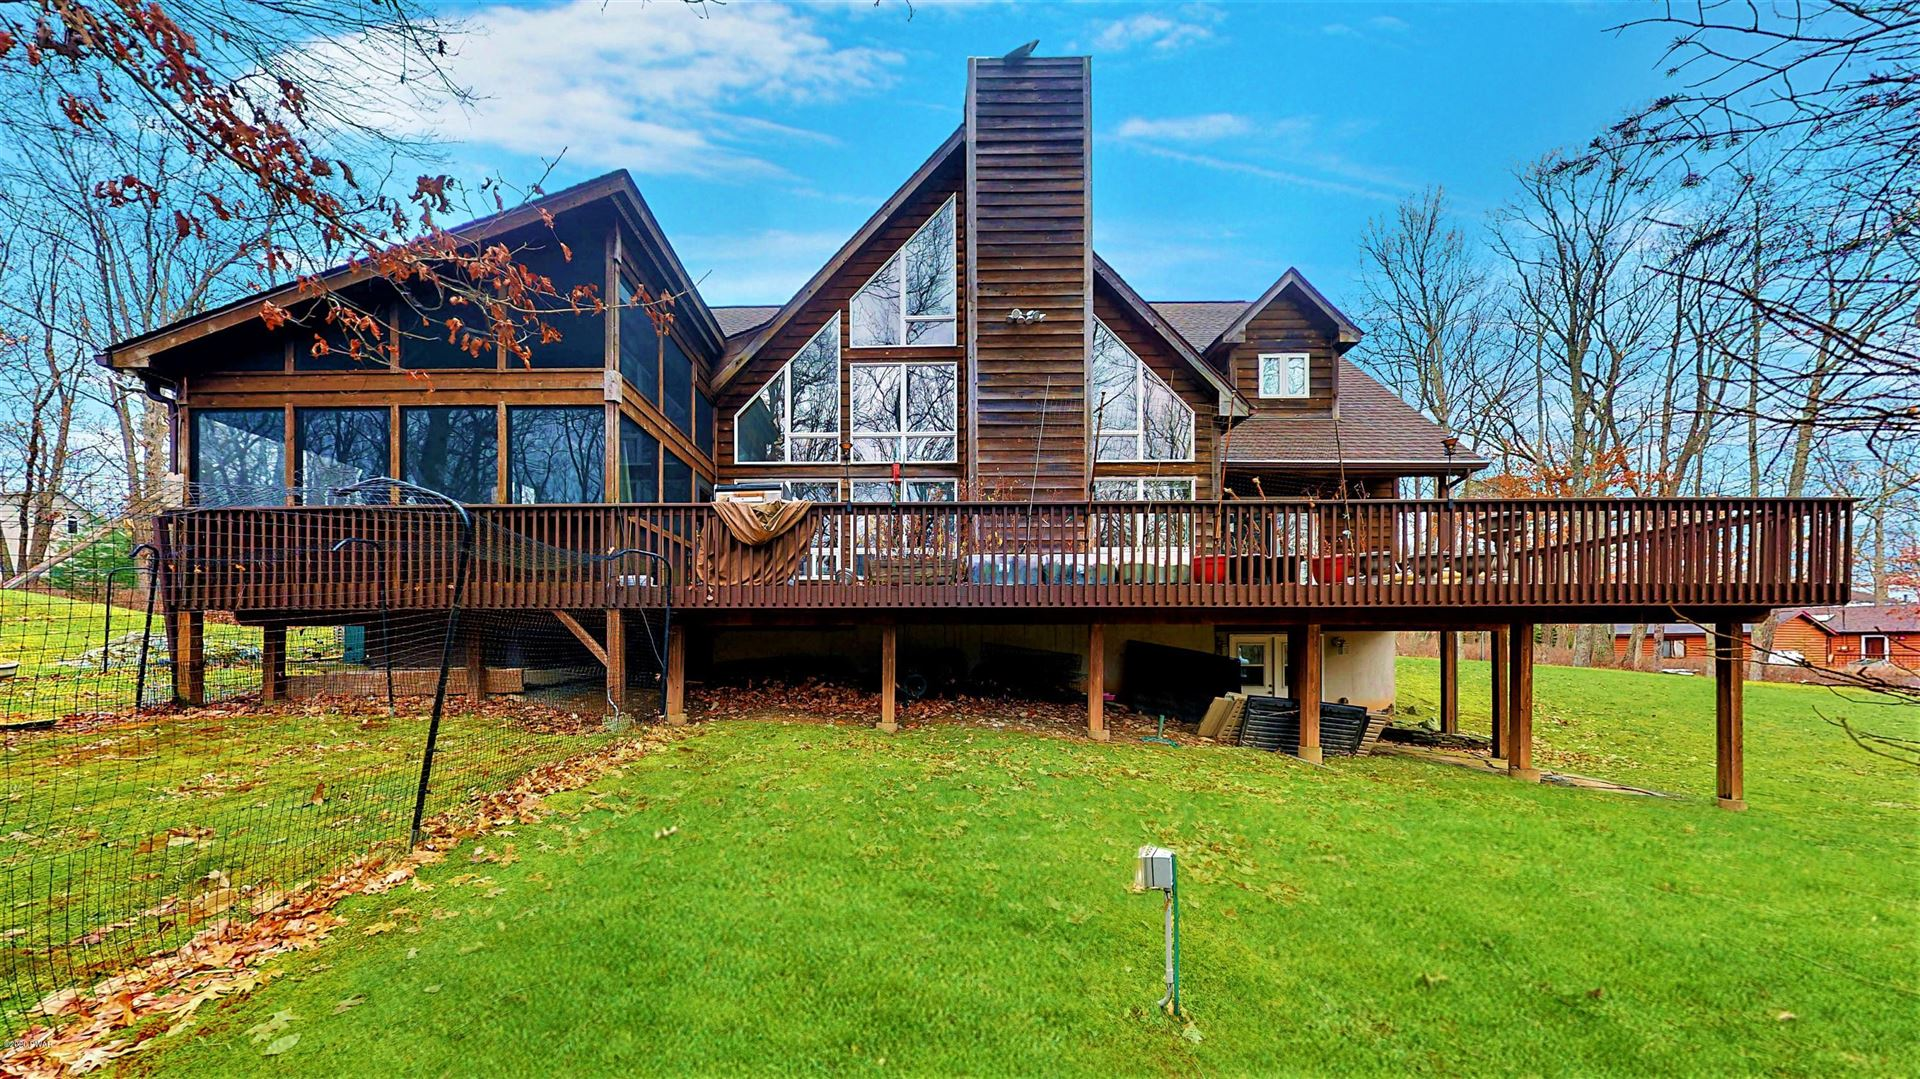 Photo of 229 Washington Dr, Lords Valley, PA 18428 (MLS # 20-4784)